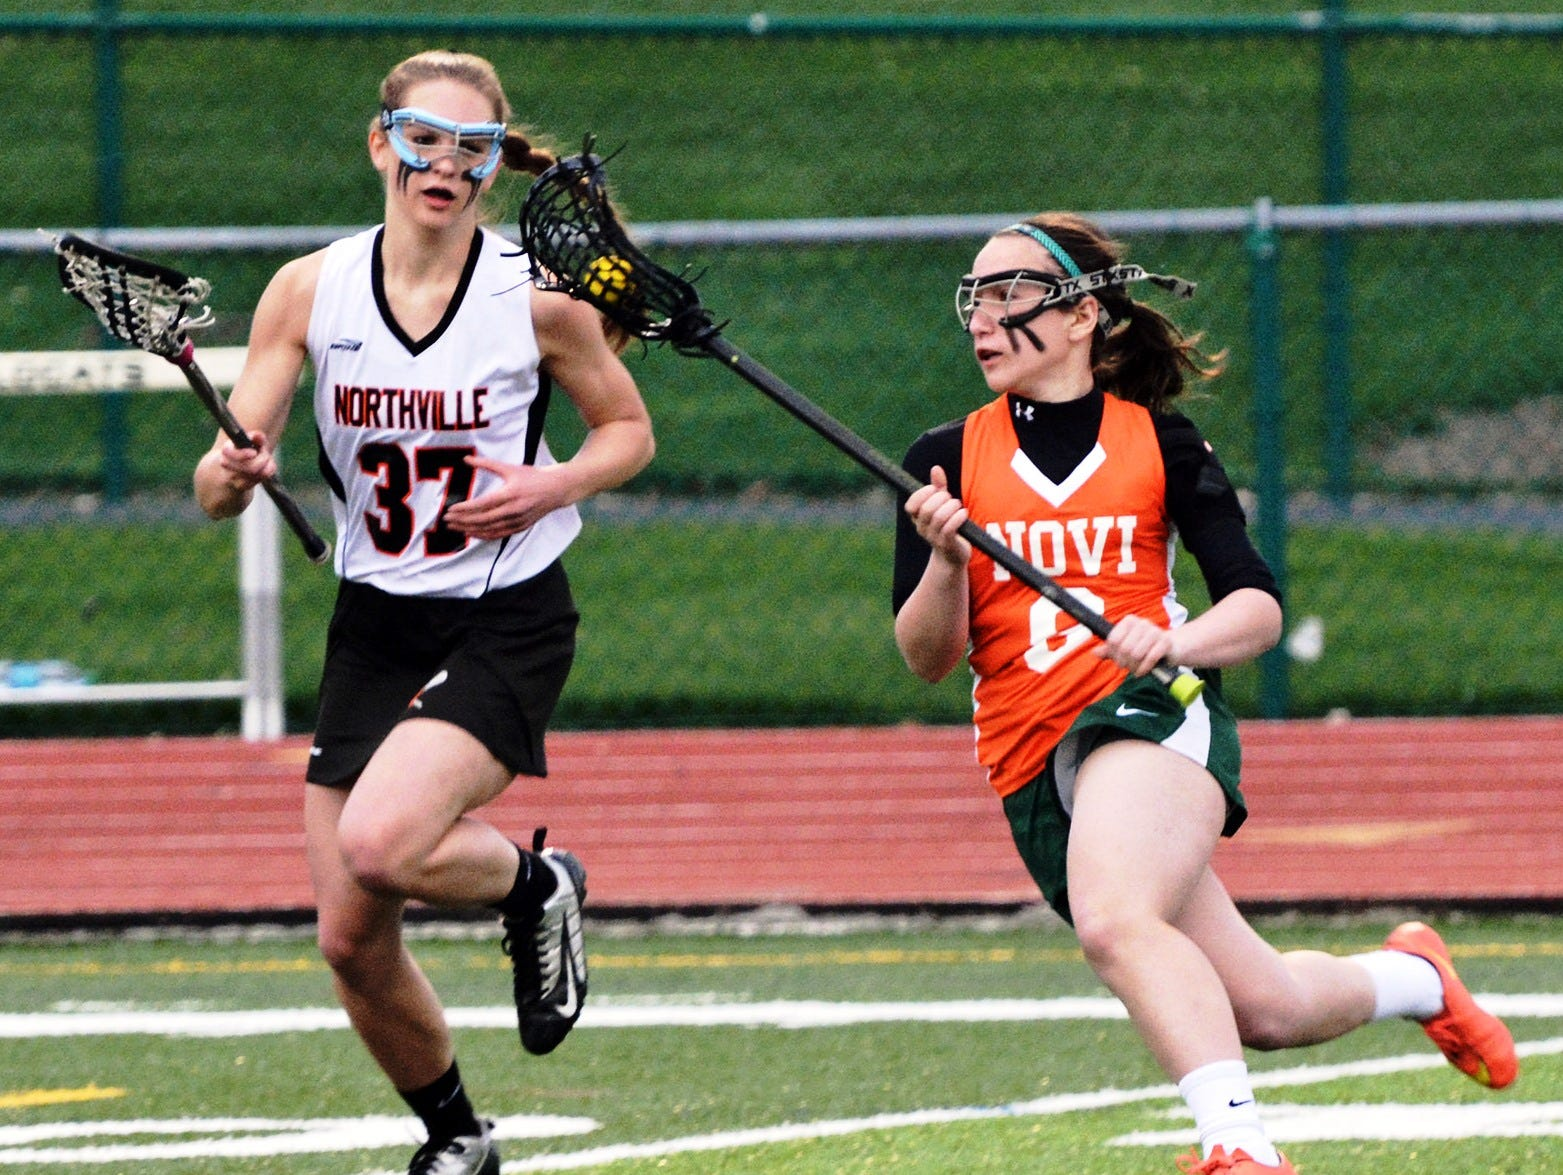 Novi's Gina Salemi (right) goes on the attack against Northville's Shayla Croteau.